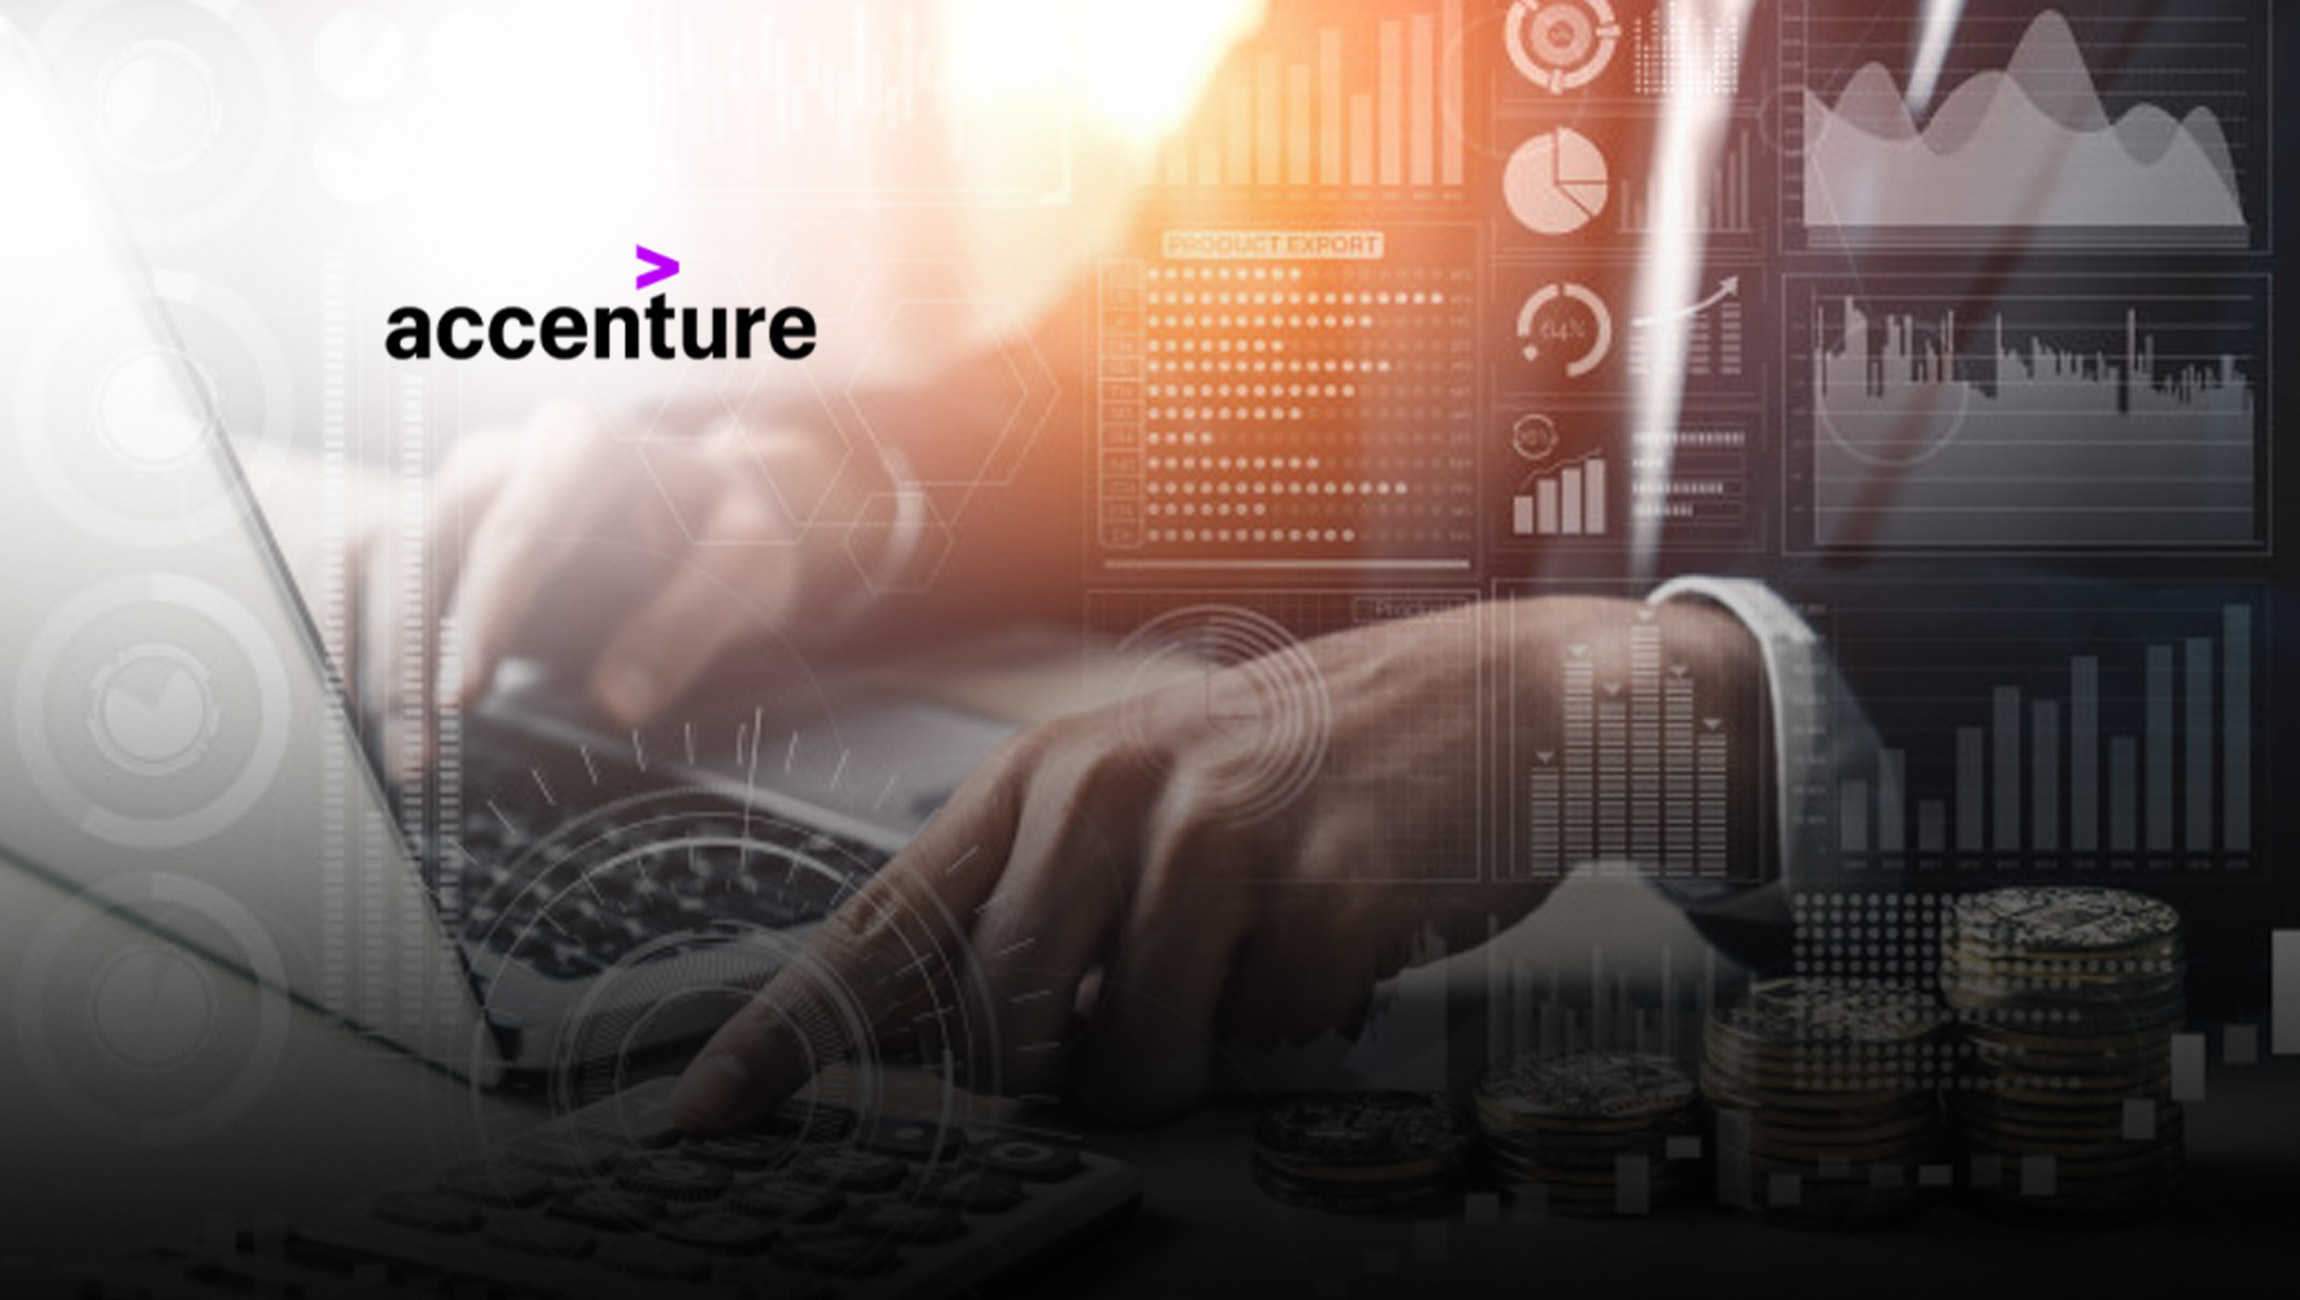 Accenture Makes Strategic Investment in TripleBlind to Bolster Data Privacy and Increase Data Collaboration Opportunities